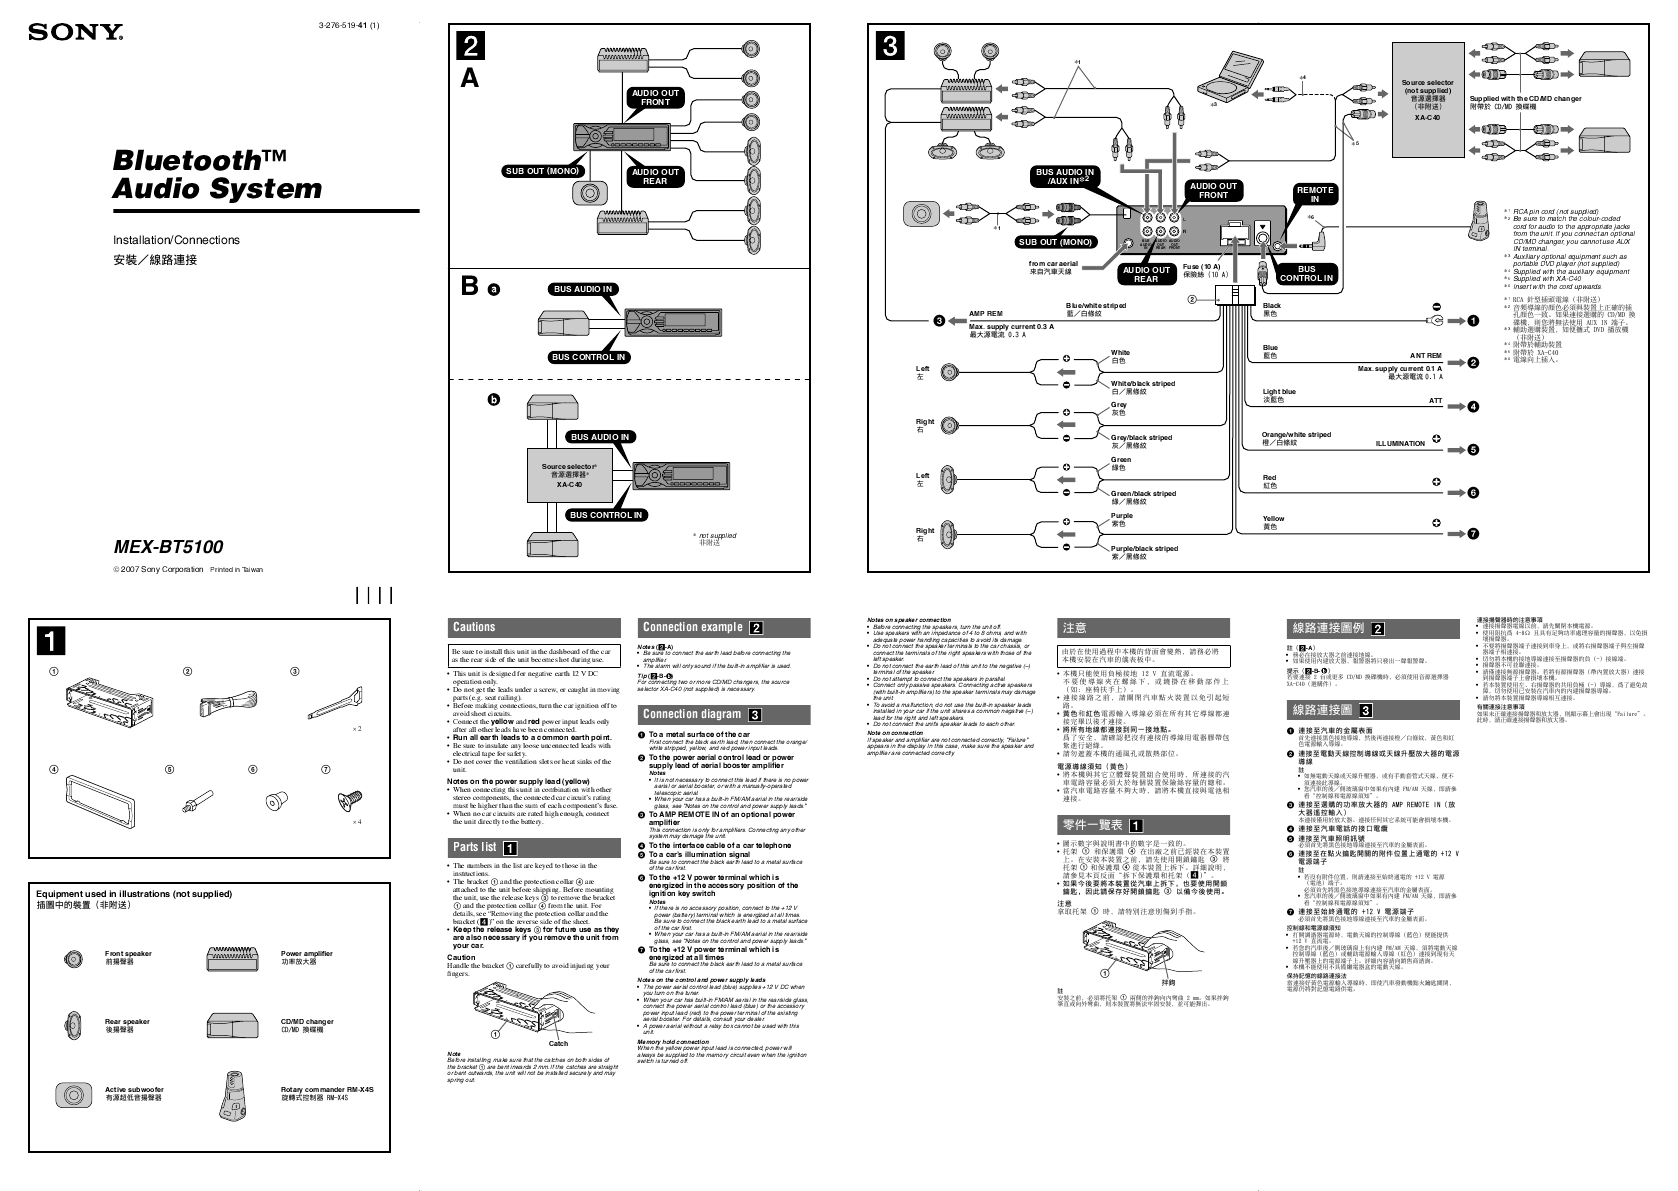 c1bebceb 8cce 8634 61e0 4dae8d48ba0c 000001?resize\\\=665%2C472 pioneer deh 245 wiring diagram & pioneer deh 245 wiring cce hydraulics wiring diagram at fashall.co